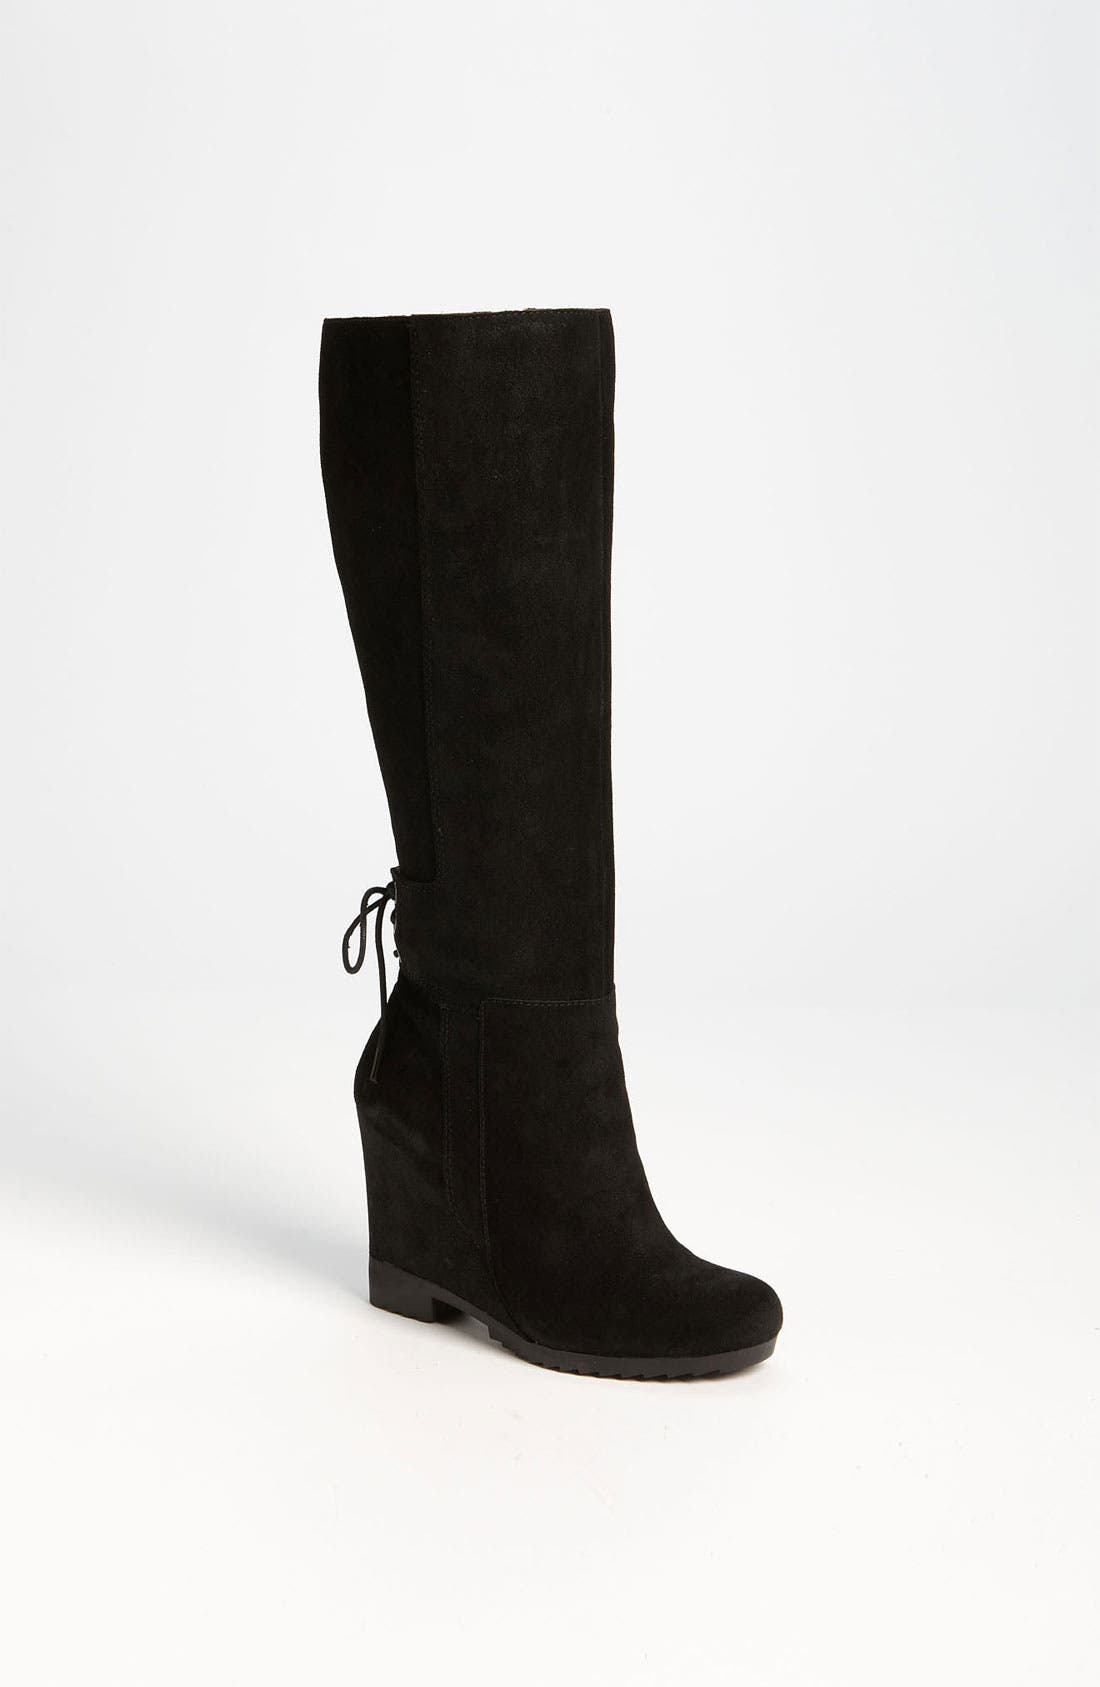 Alternate Image 1 Selected - Nine West 'Uvegotsole' Tall Boot (Online Only)